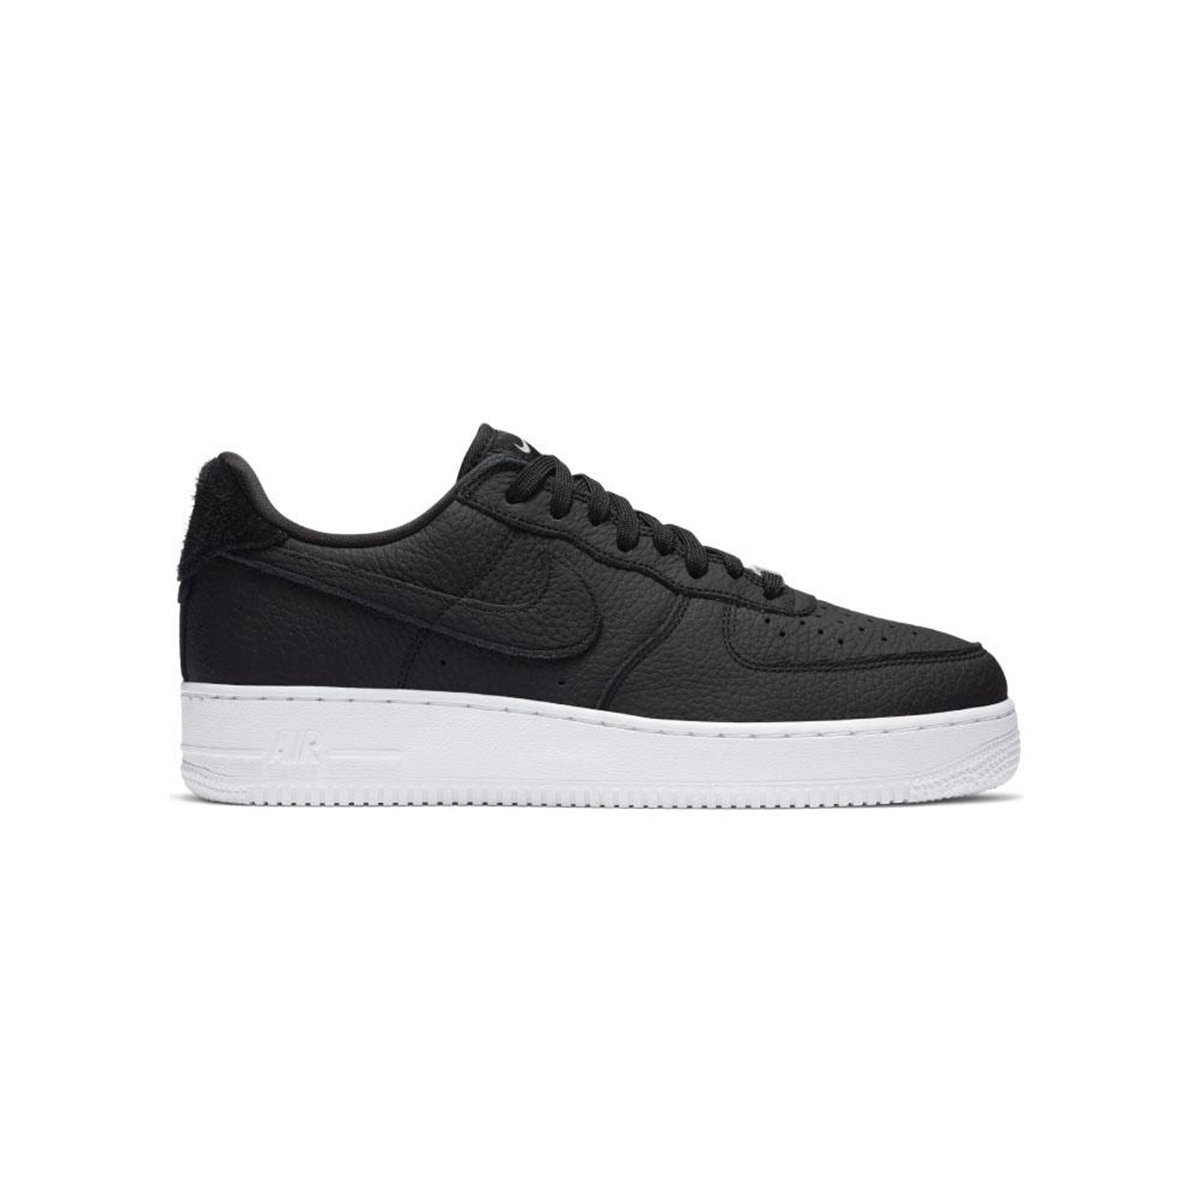 Primary image for Nike Air Force 1 07 (Craft Black/ Black/ White) Men US 8-13